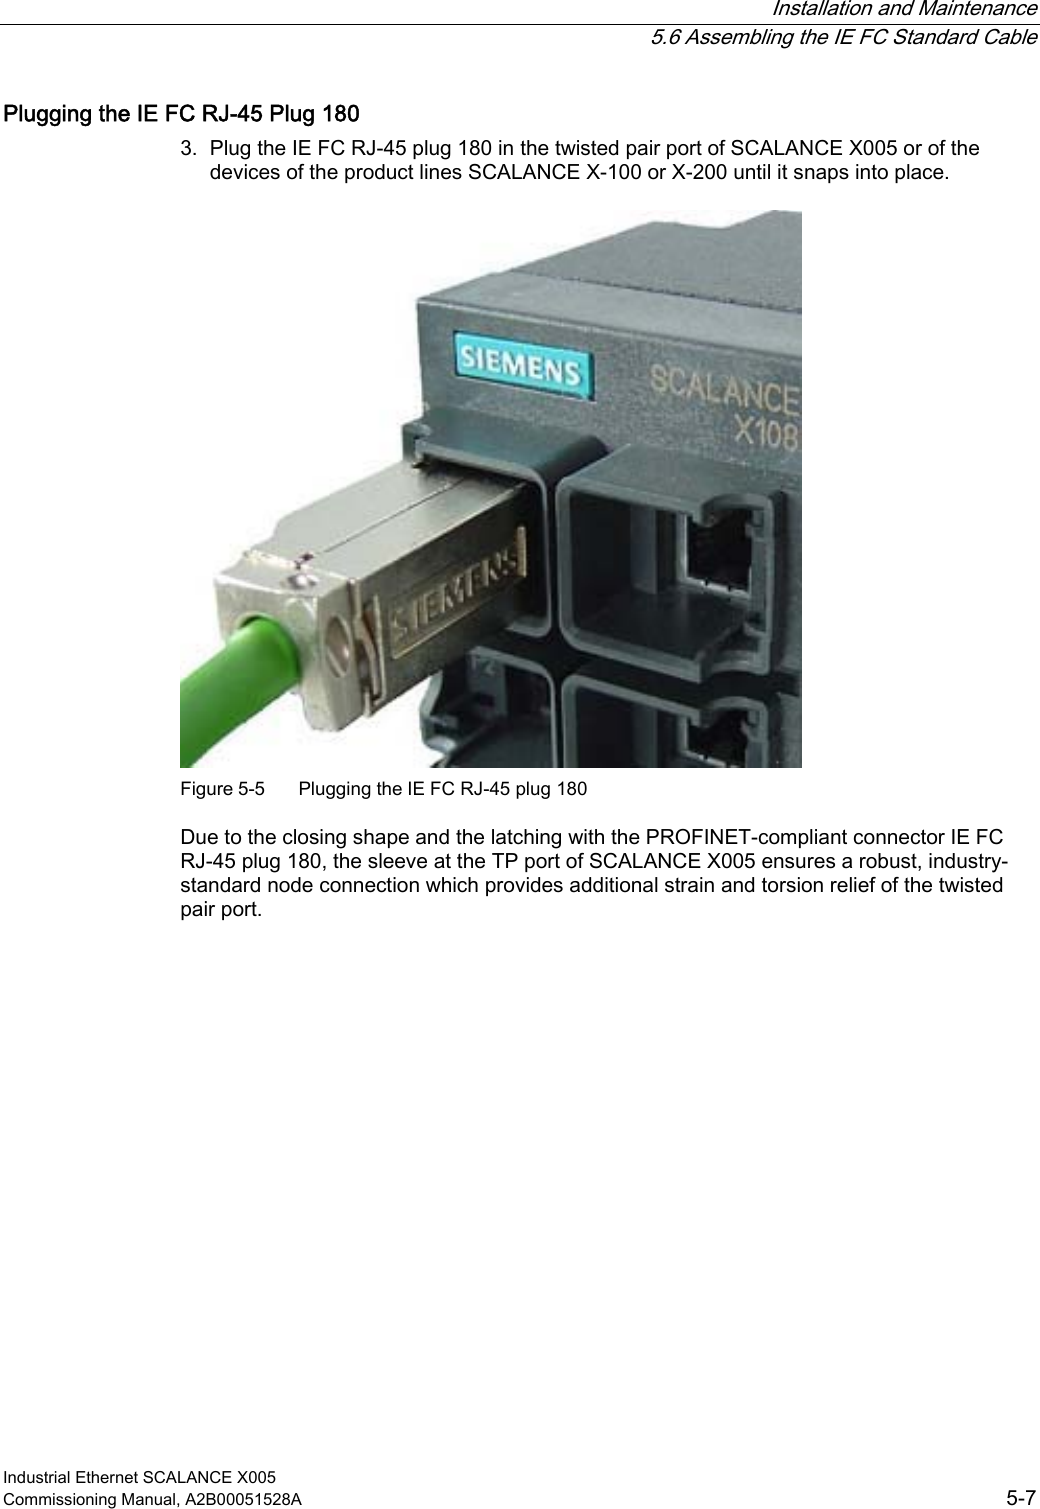 Siemens X005 Users Manual Industrial Ethernet SCALANCE